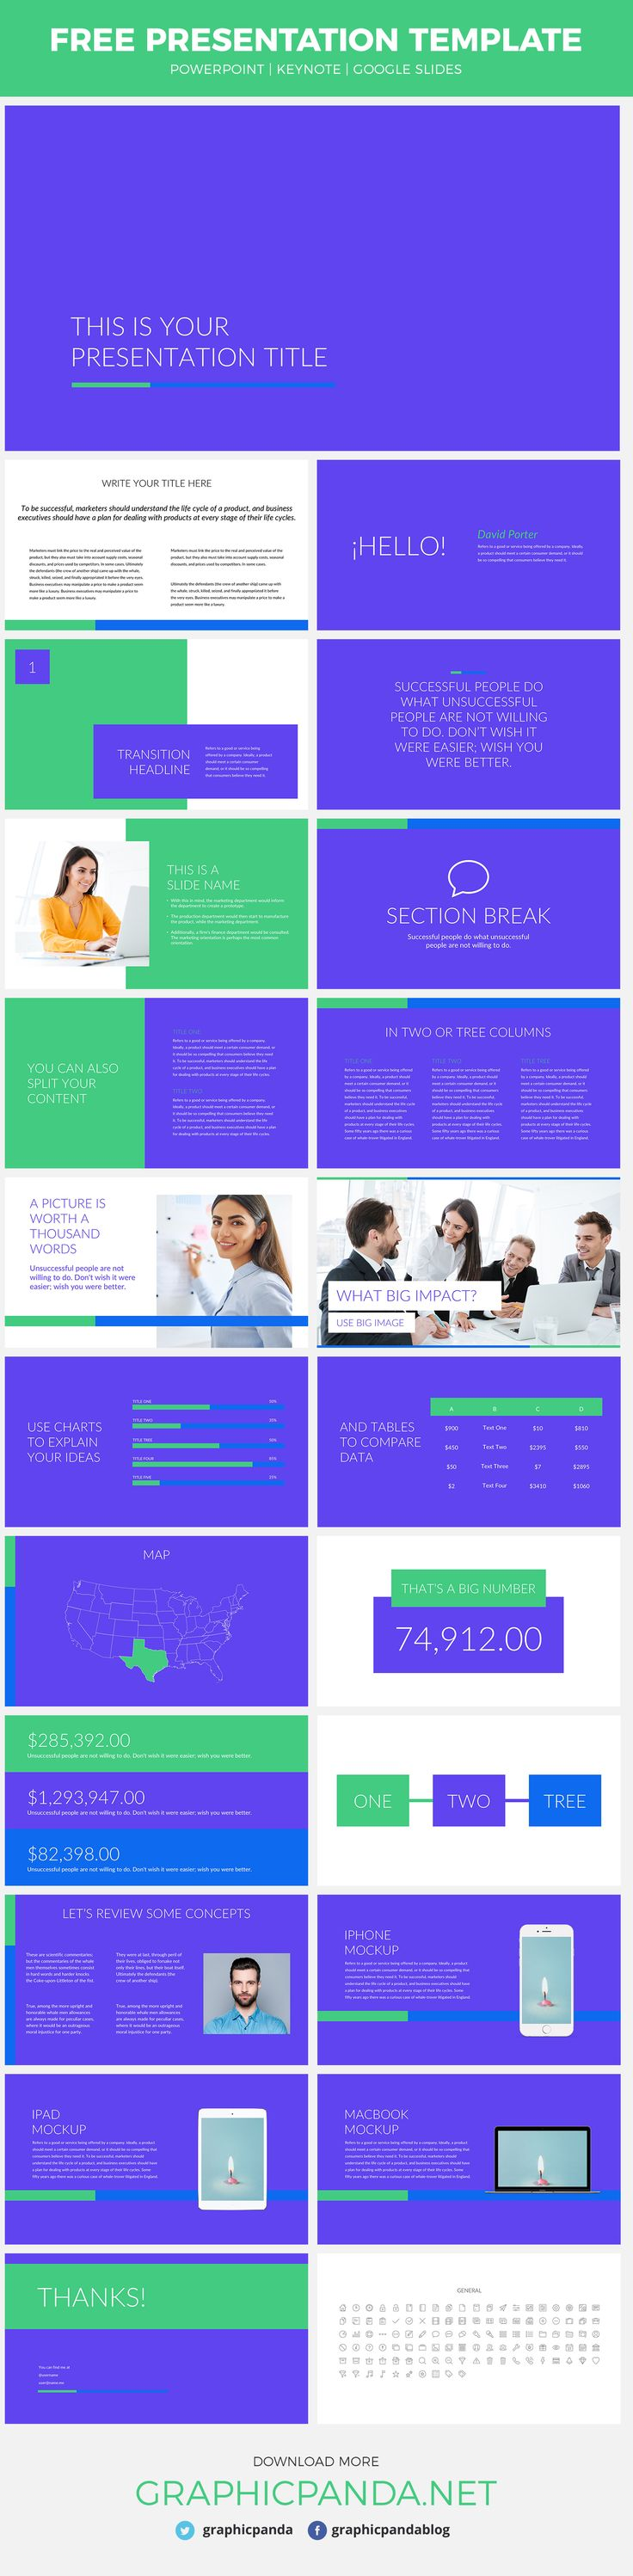 The Business Pro Free Template is the tool you are looking for if you are interested in presenting your company's product to any kind of audience. Its professional slides can be used as Google Slides, Keynotes, and Powerpoint formats. Each of one of the Business Pro's slides will give you the best schemes that you need to present your products and persuade your listeners. Using this template will help you and your company reach the desired goals.